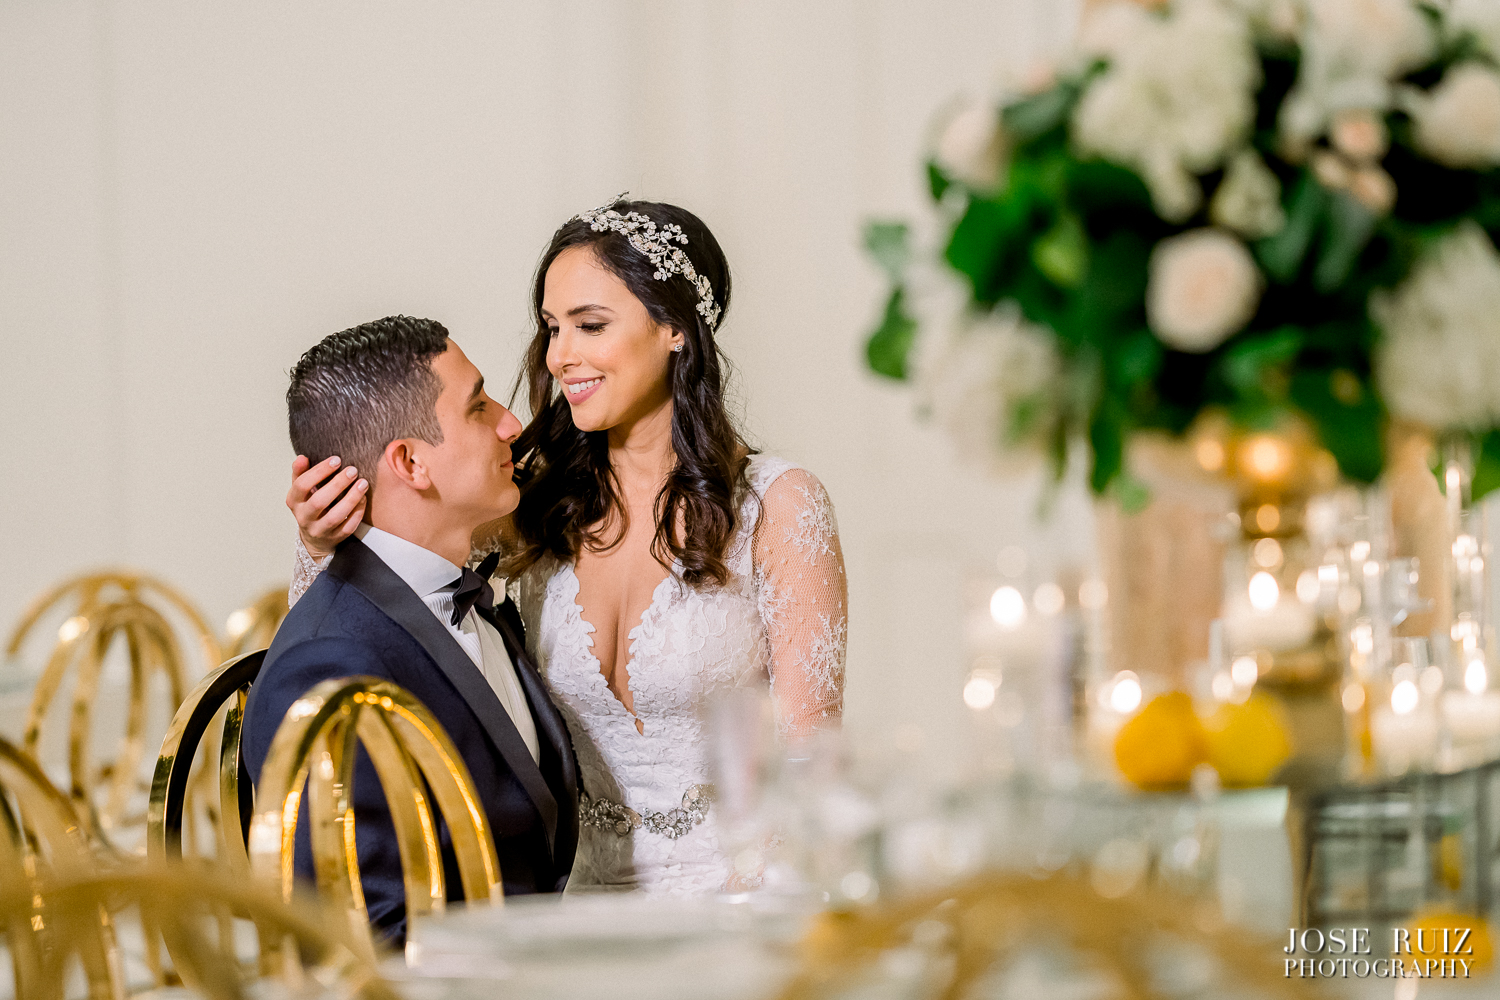 Jose Ruiz Photography- Veronica & Ivan-0212.jpg